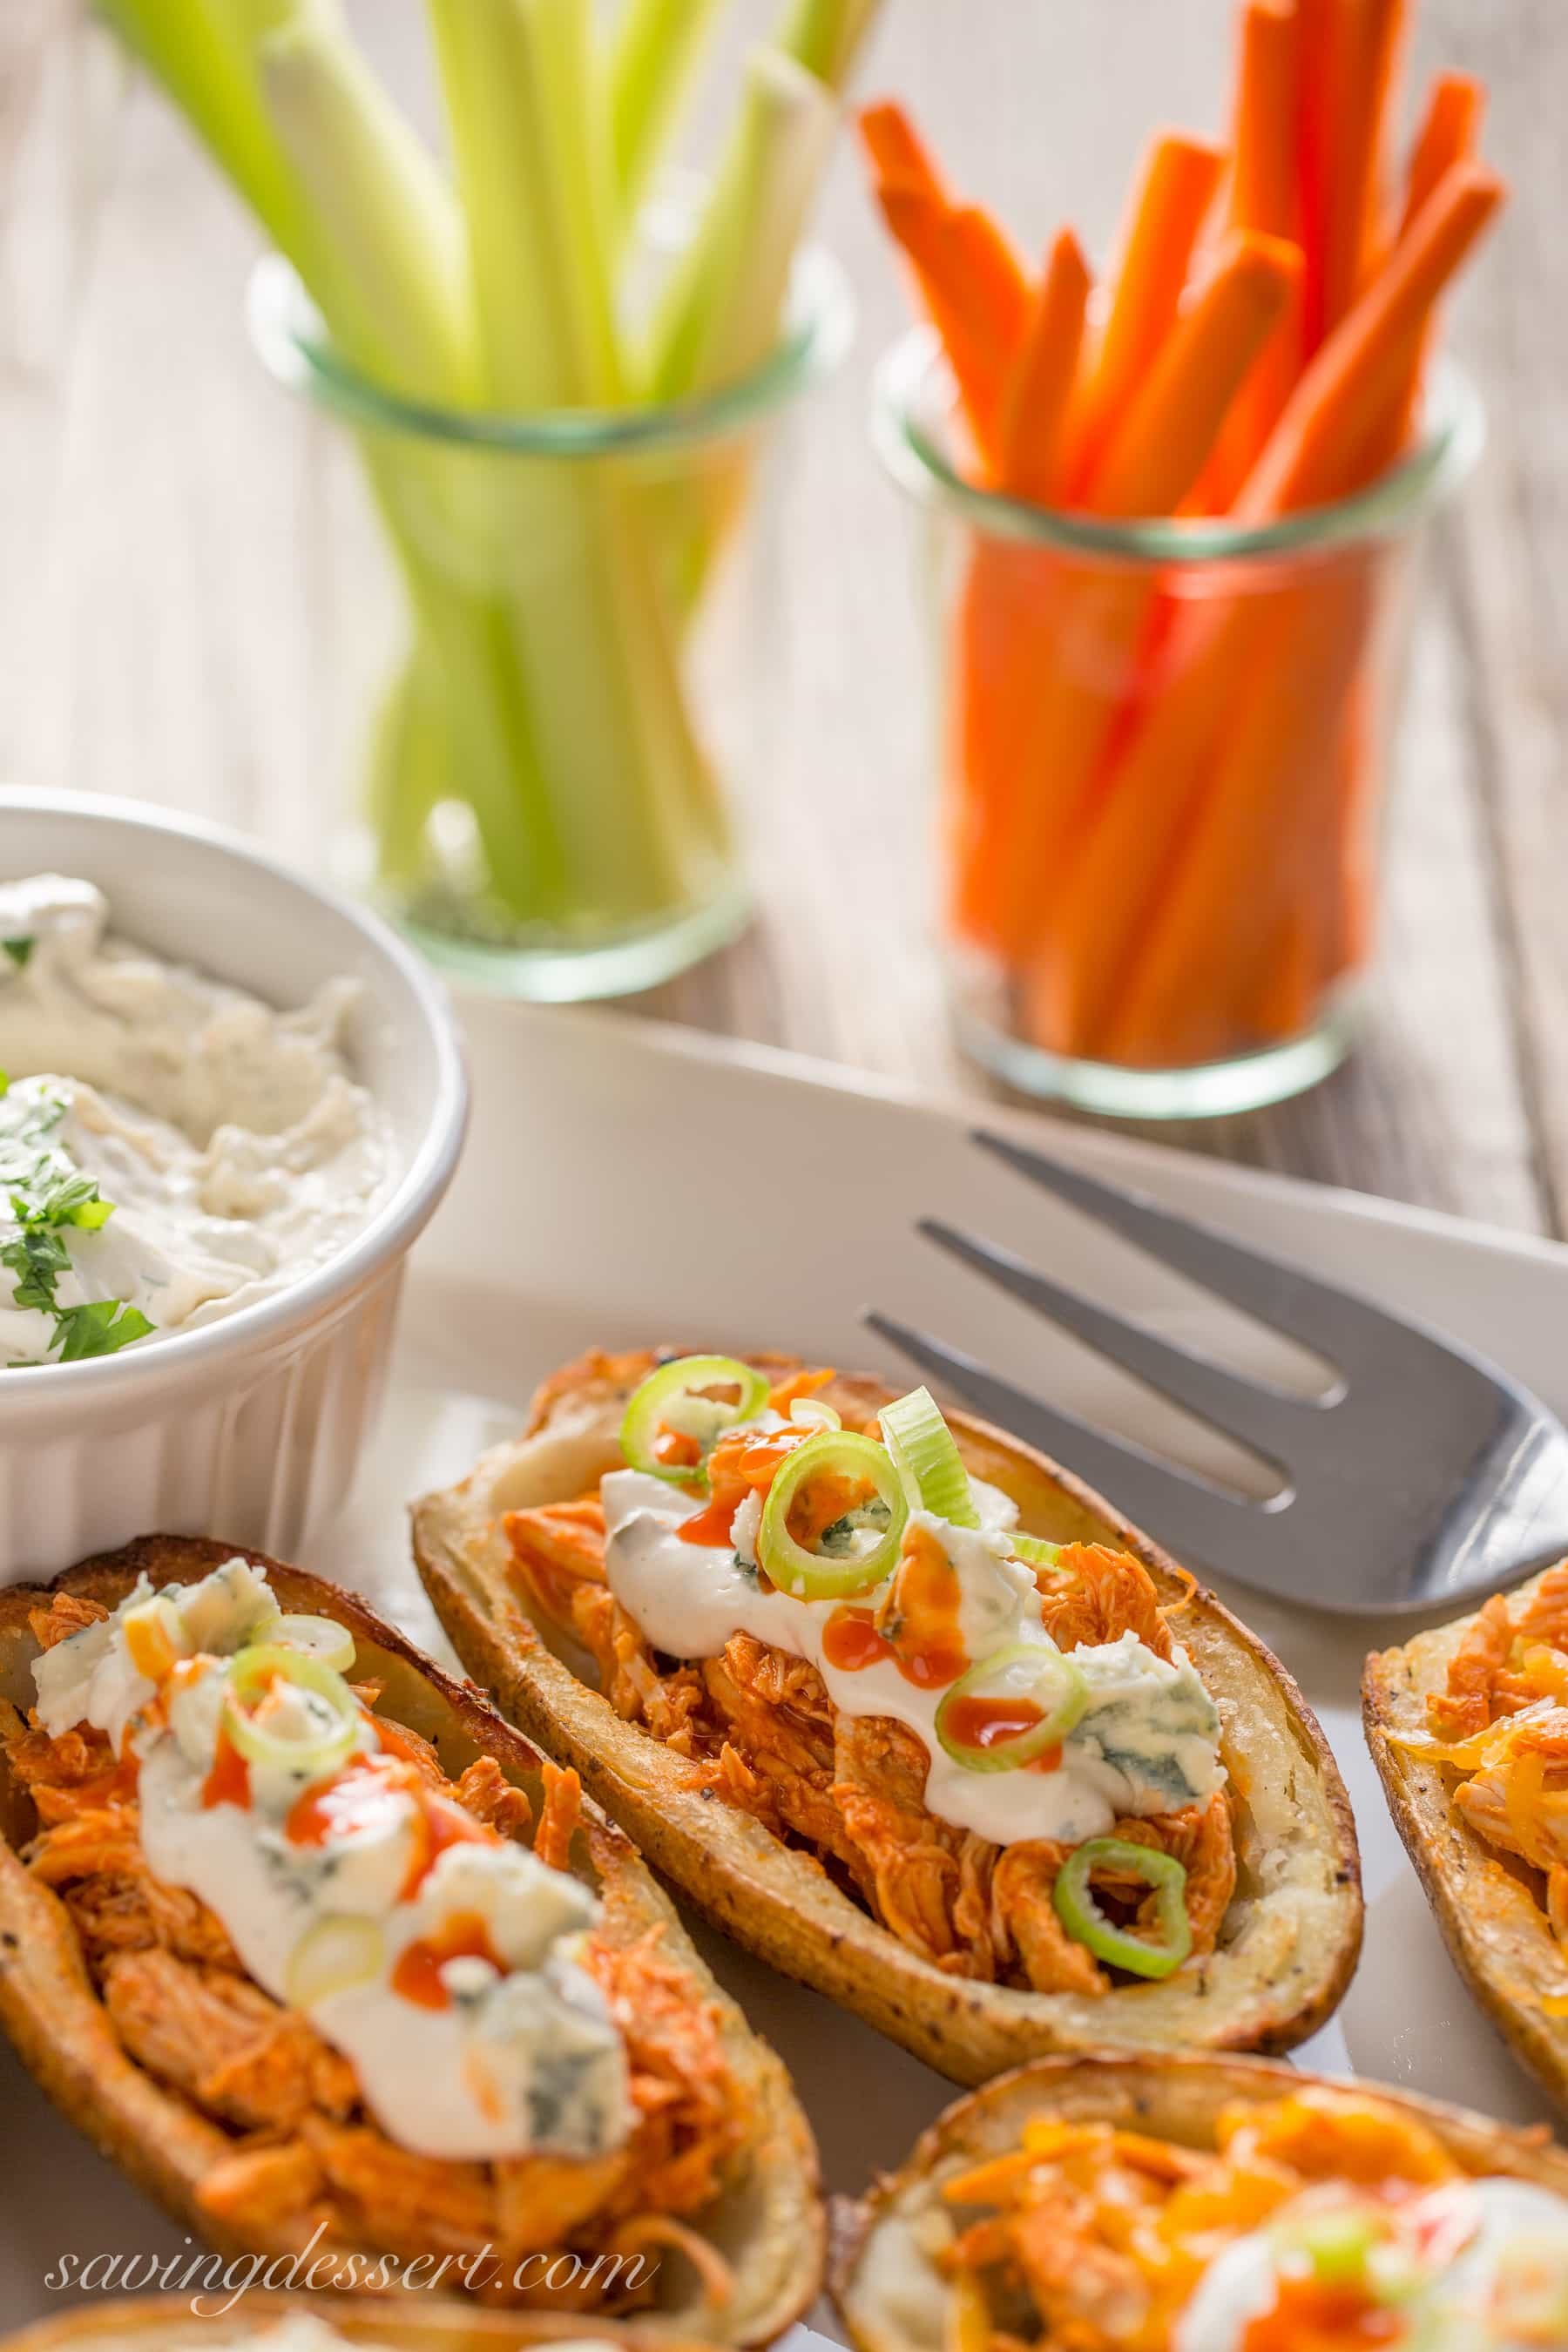 Buffalo Chicken Potato Skins with Blue Cheese Dip | www.savingdessert ...